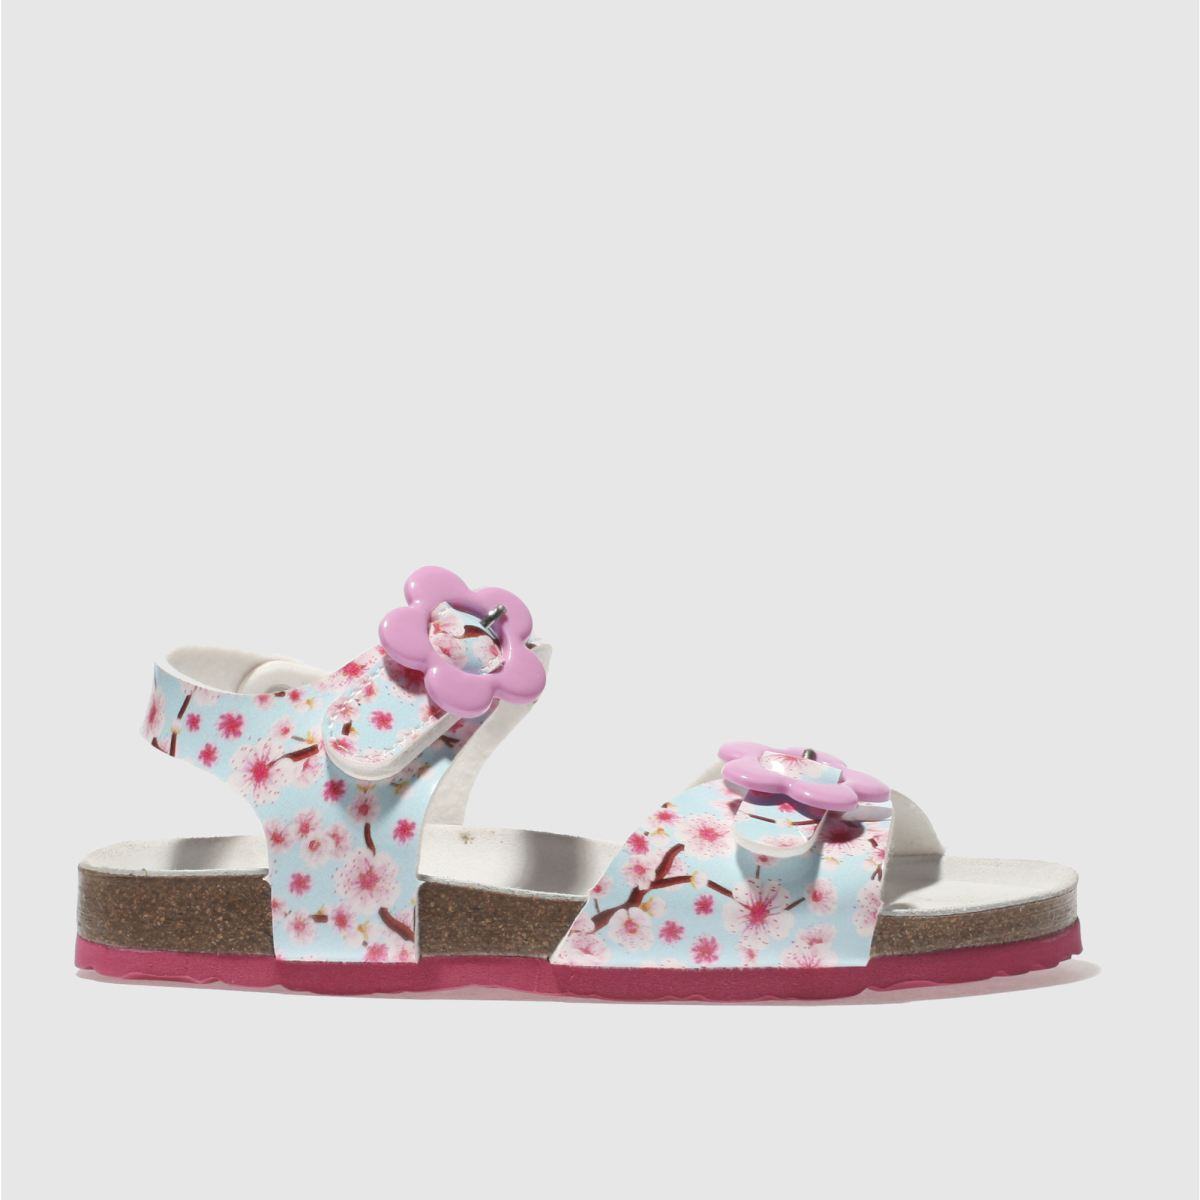 Lelli Kelly Lelli Kelly  Pale Blue Sonia Sandal Girls Junior Sandals